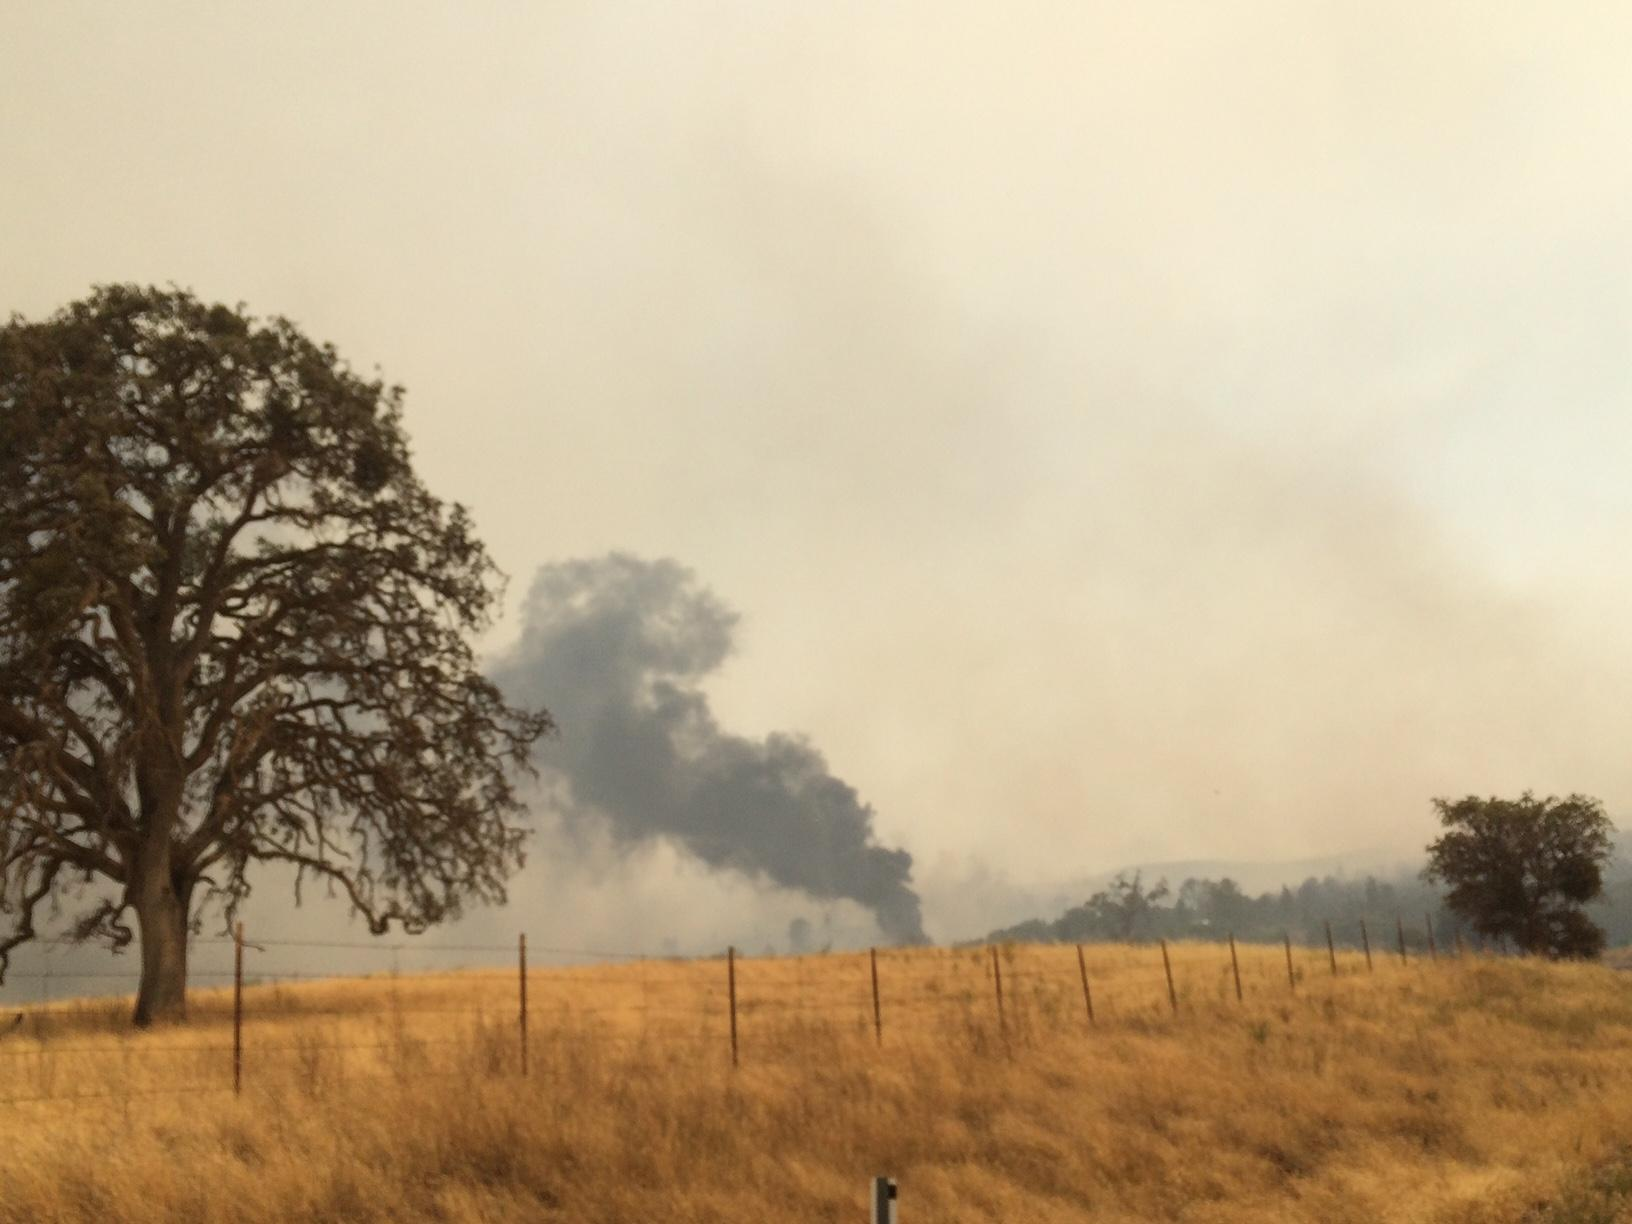 Evacuations Ordered as Firefighters Work to Contain Detwiler Fire Near Yosemite